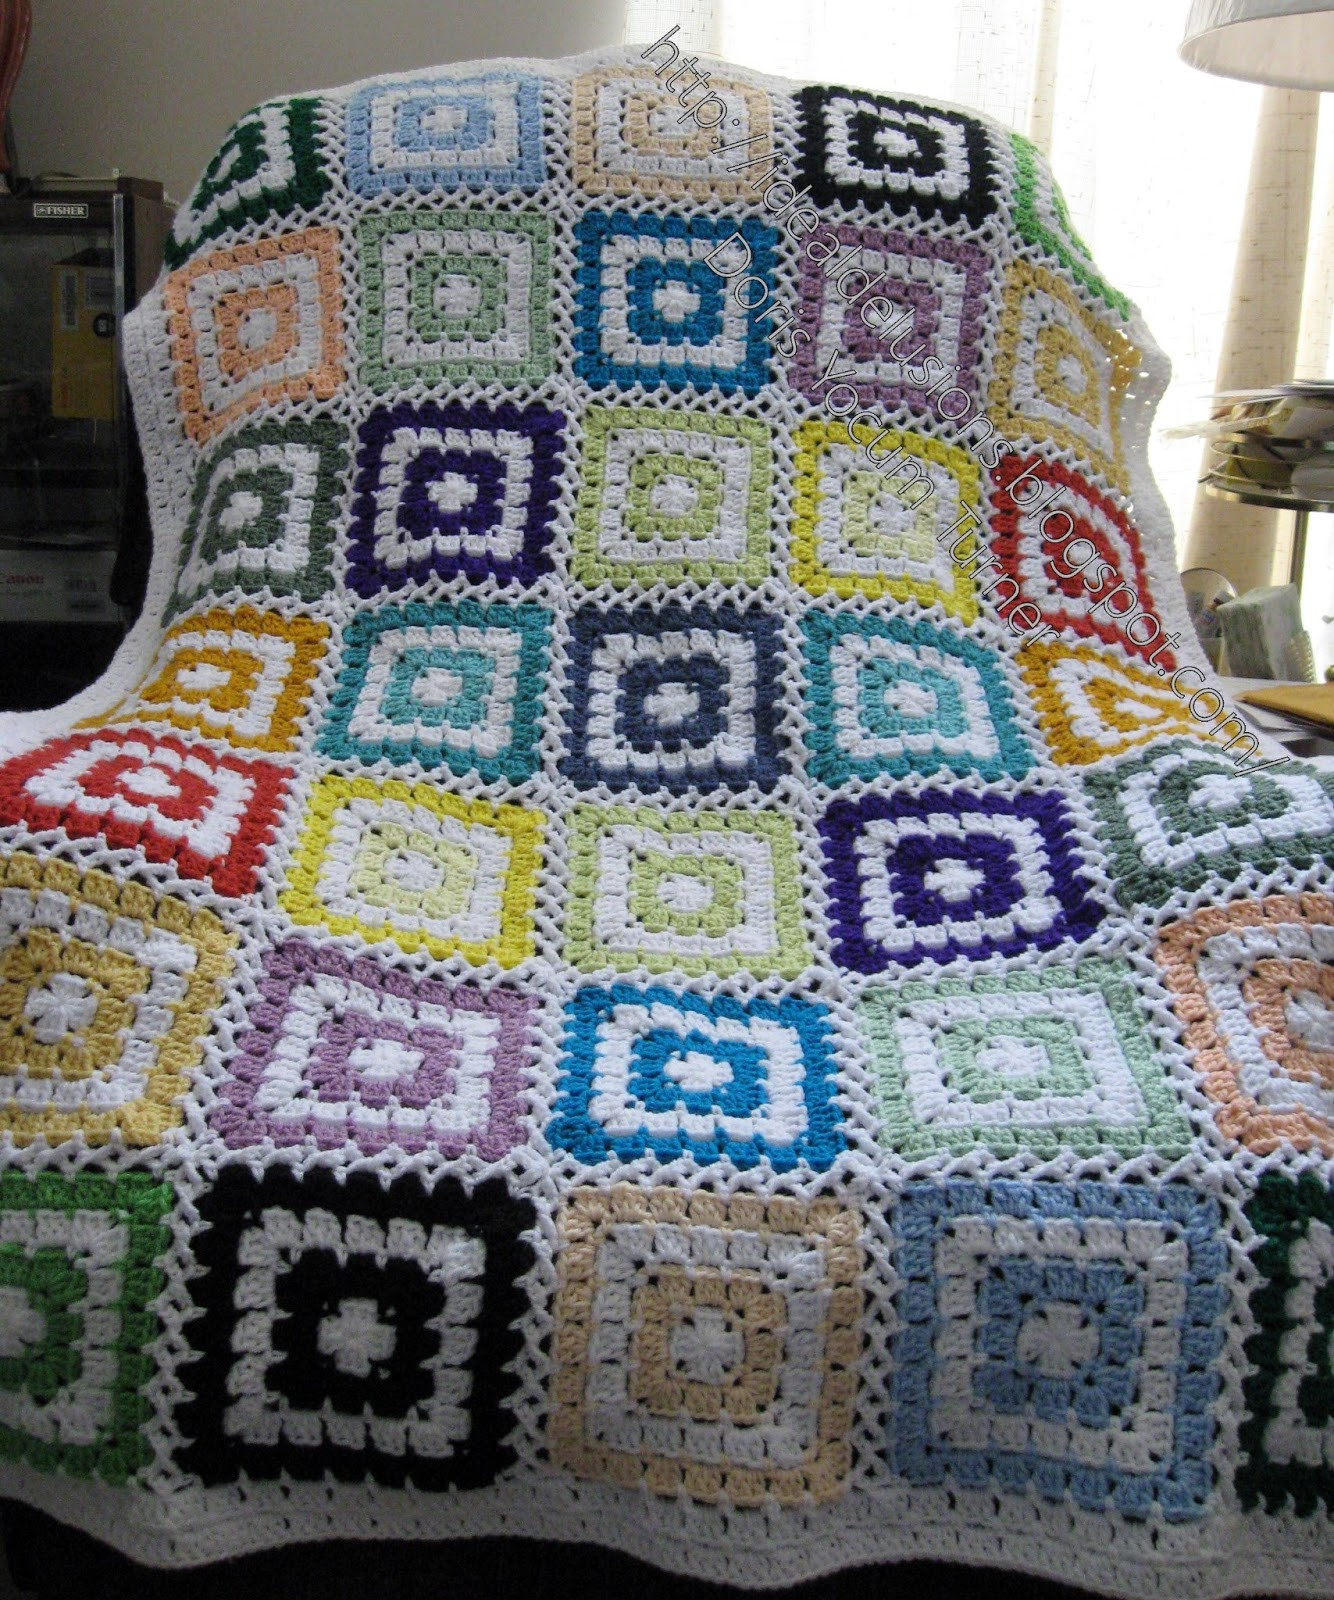 Best Of Ideal Delusions Designing Box Stitch Afghans Afghan Squares Of Perfect 50 Ideas Afghan Squares